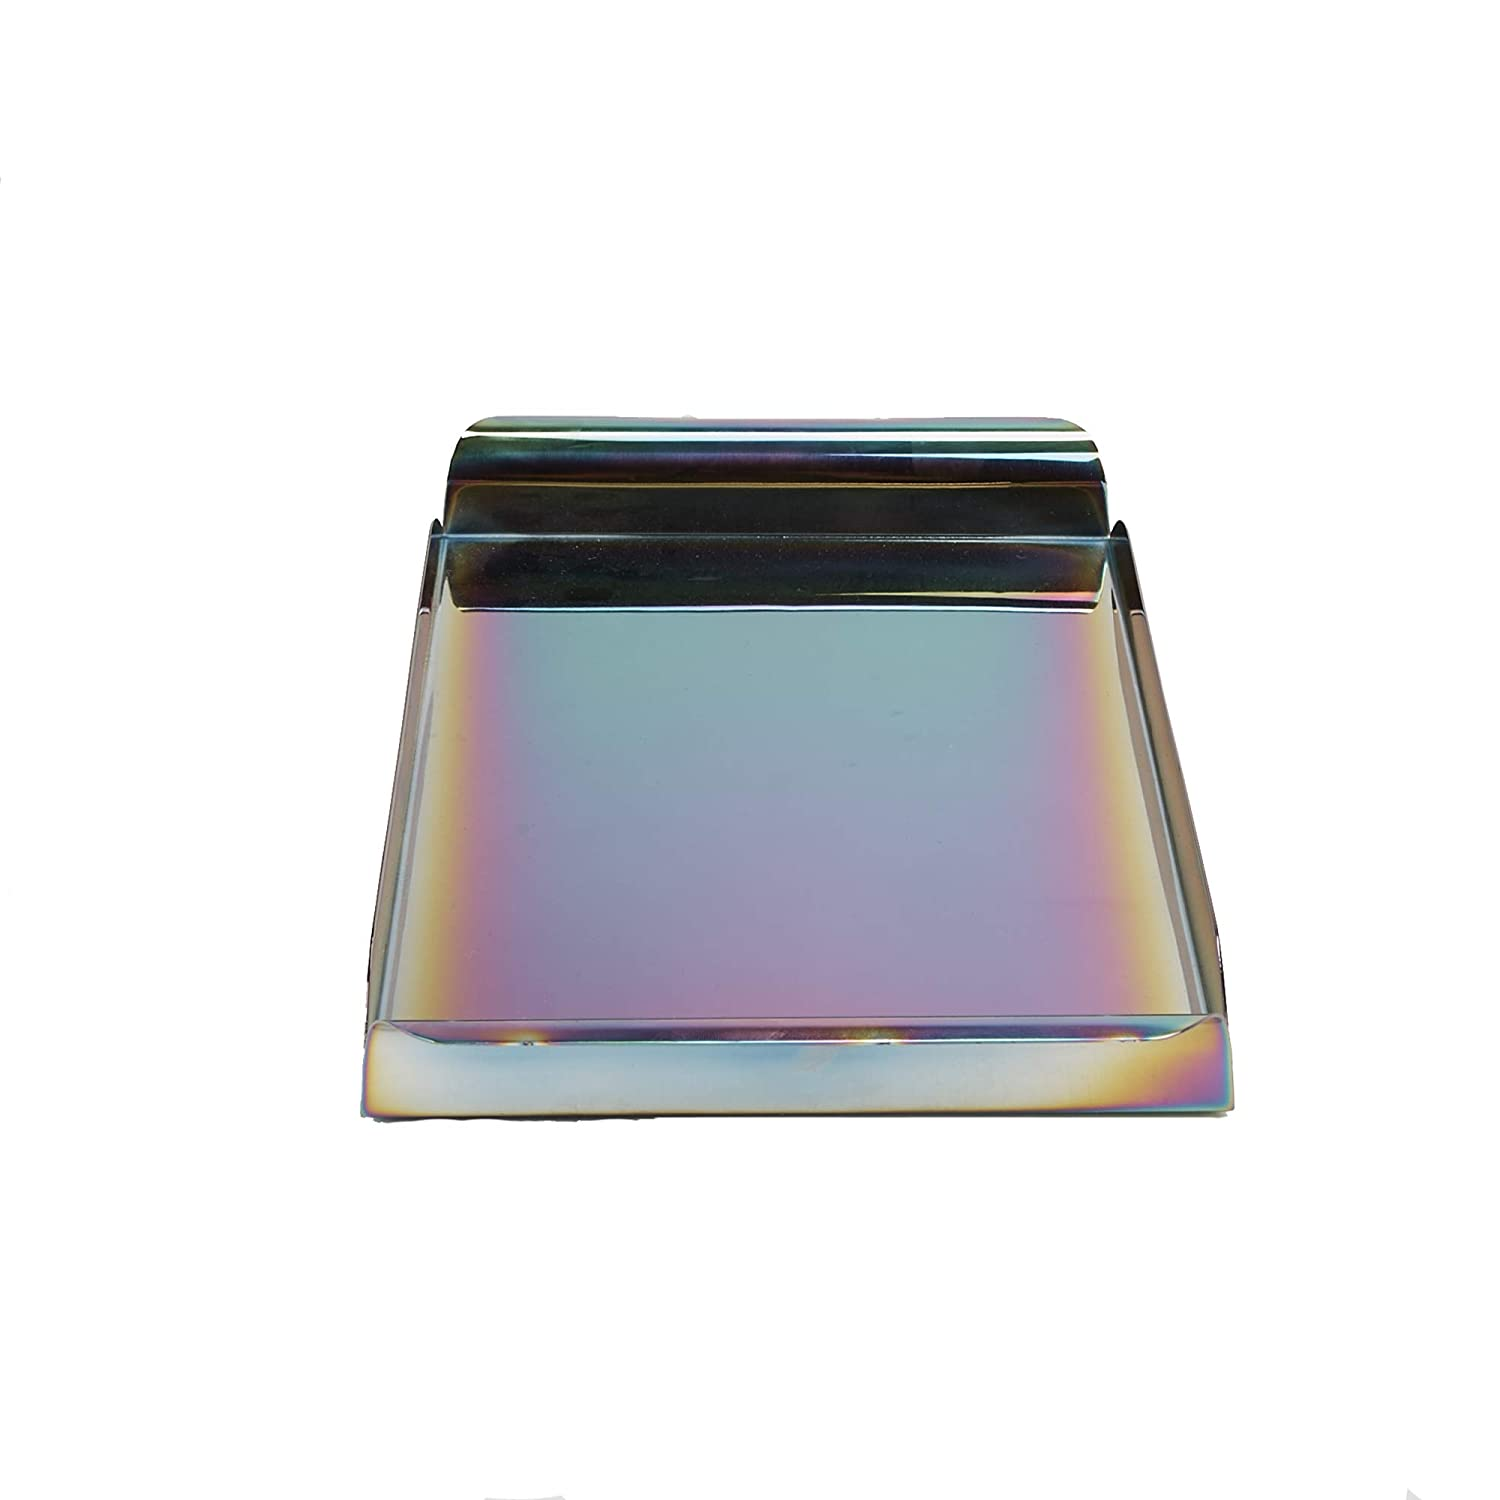 Gold Decorative Rainbow Reflective Finish Pitcher One Size Copper Beverage Multicolor Mind Reader RAINPITCH-ASST Stainless Steel Water